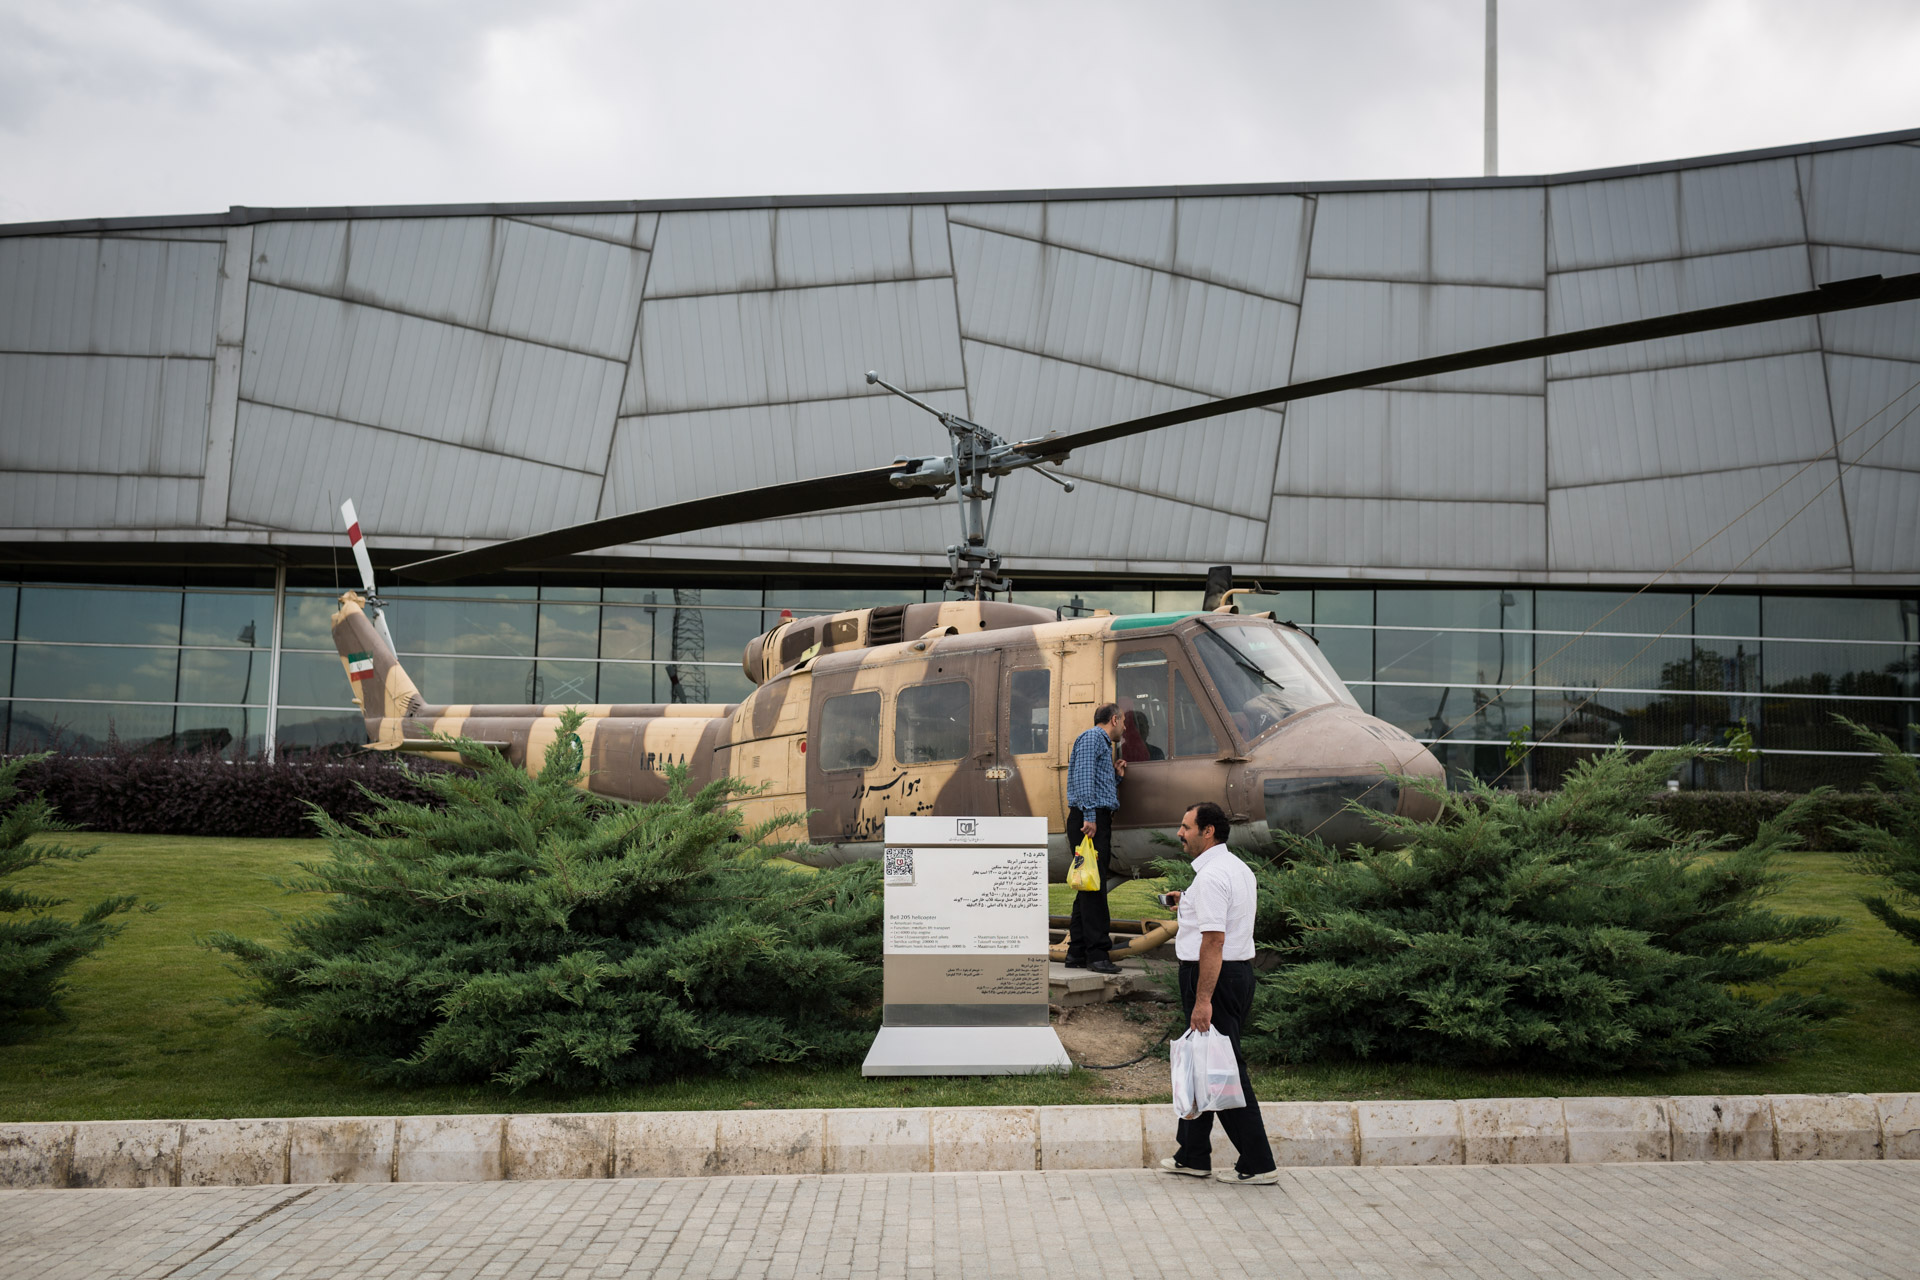 Two visitors of the museum inspect an Iranian helicopter, used in the Iran-Iraq war from 1980-1988.